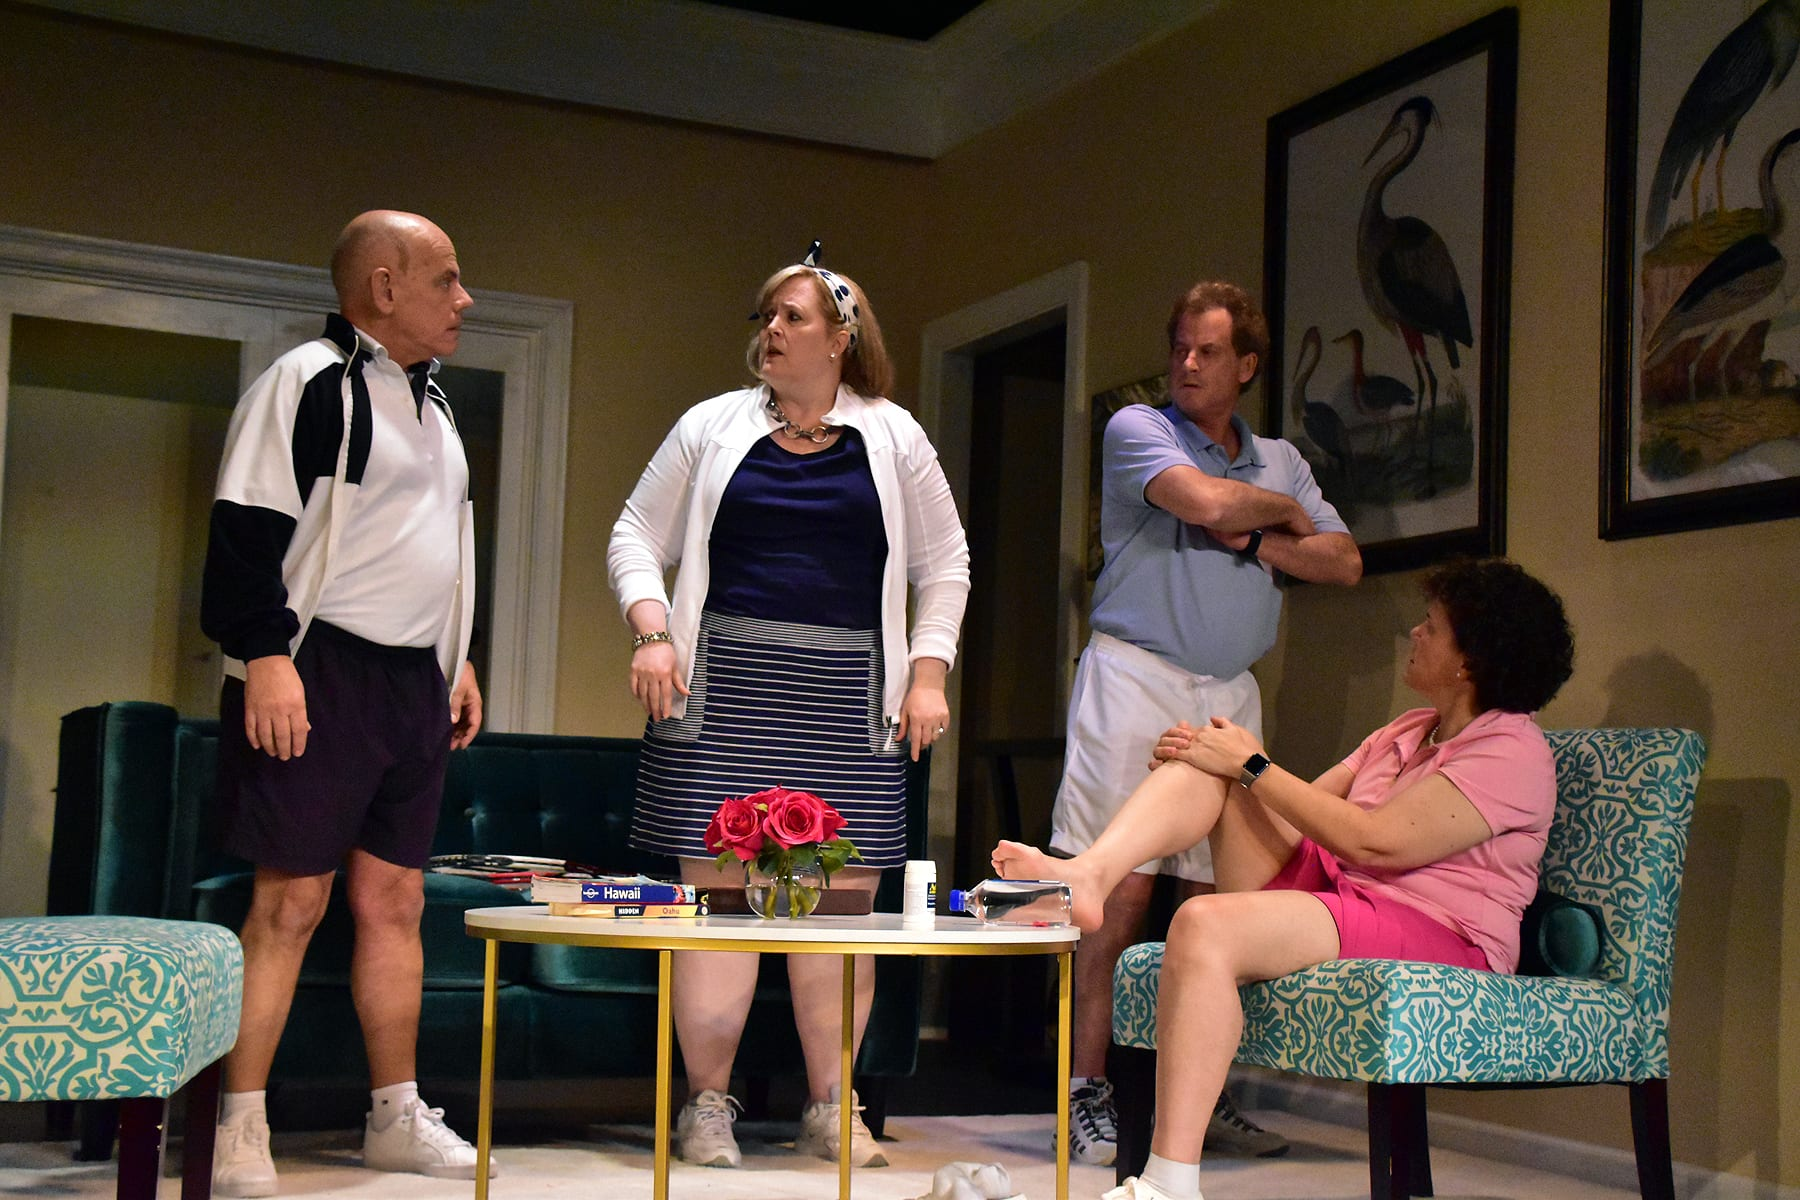 L-R: Mario Font, Laura Champe Mitchell, Lou Lehrman, and Allison Turkel are the visitors from Chicago in the Providence Players production of Neil Simon's California Suite. Photo by Chip Gertzog, Providence Players.